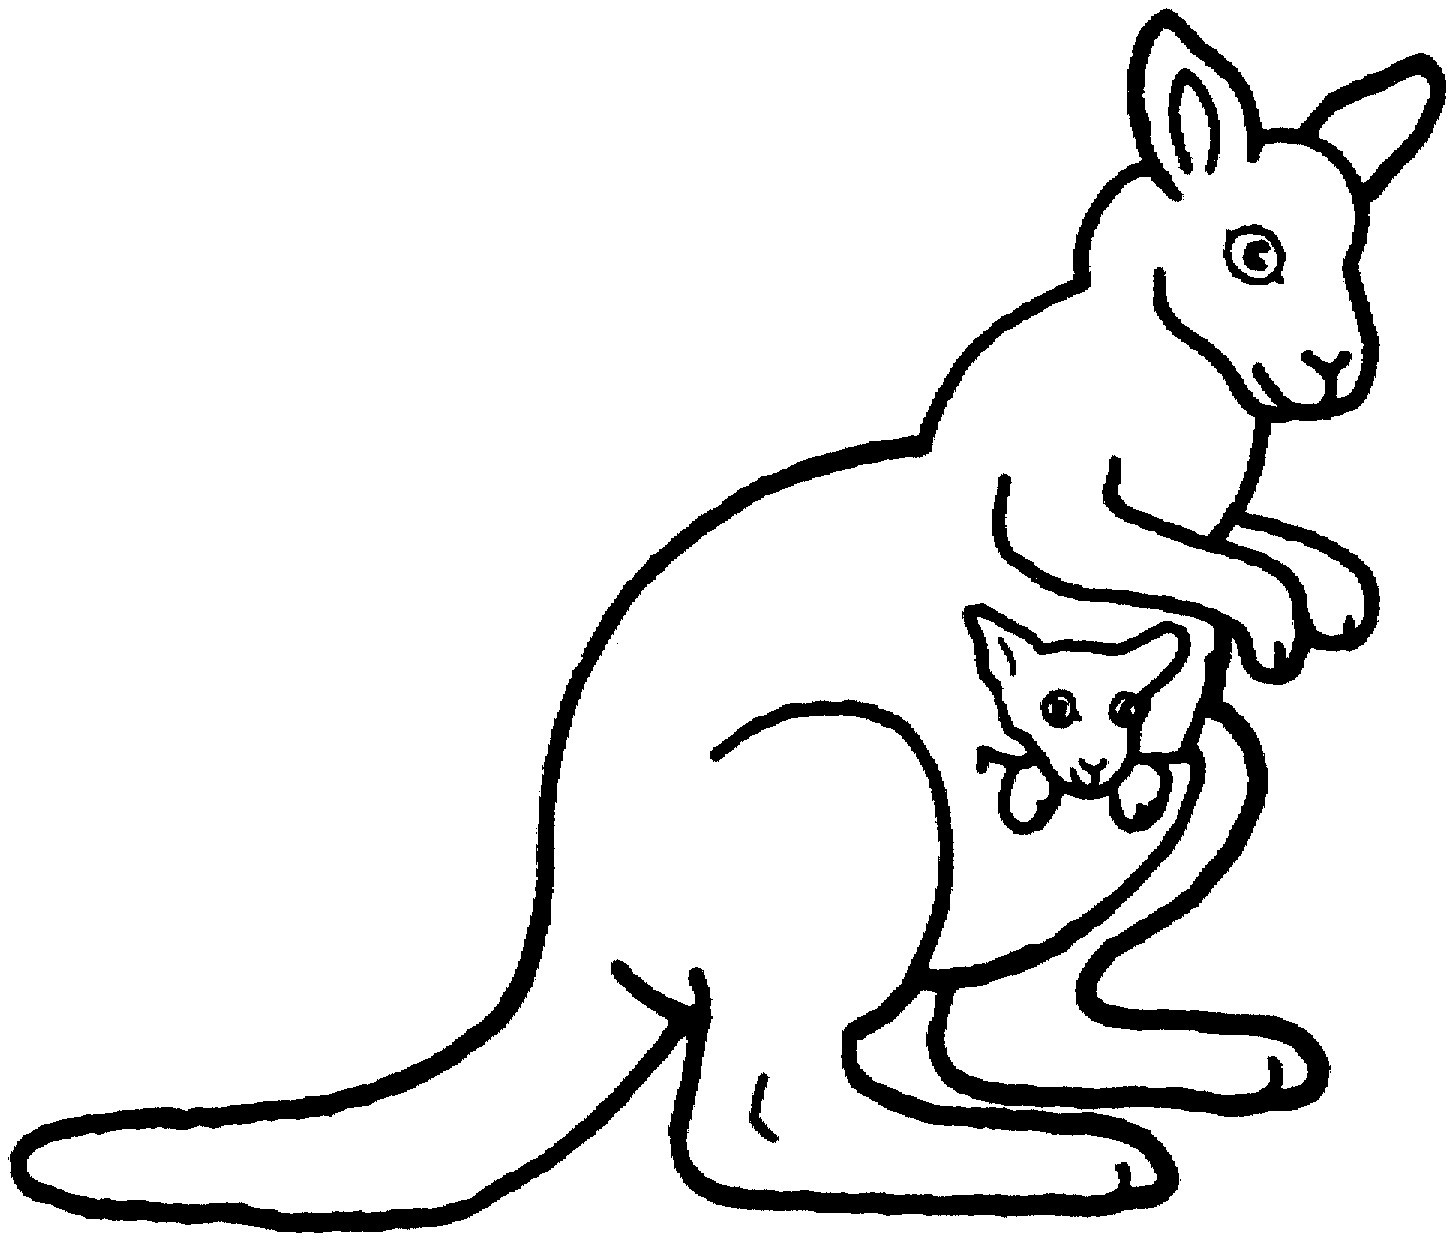 Free coloring pages kangaroo - Free Coloring Pages Kangaroo Kangaroo Coloring Sheets